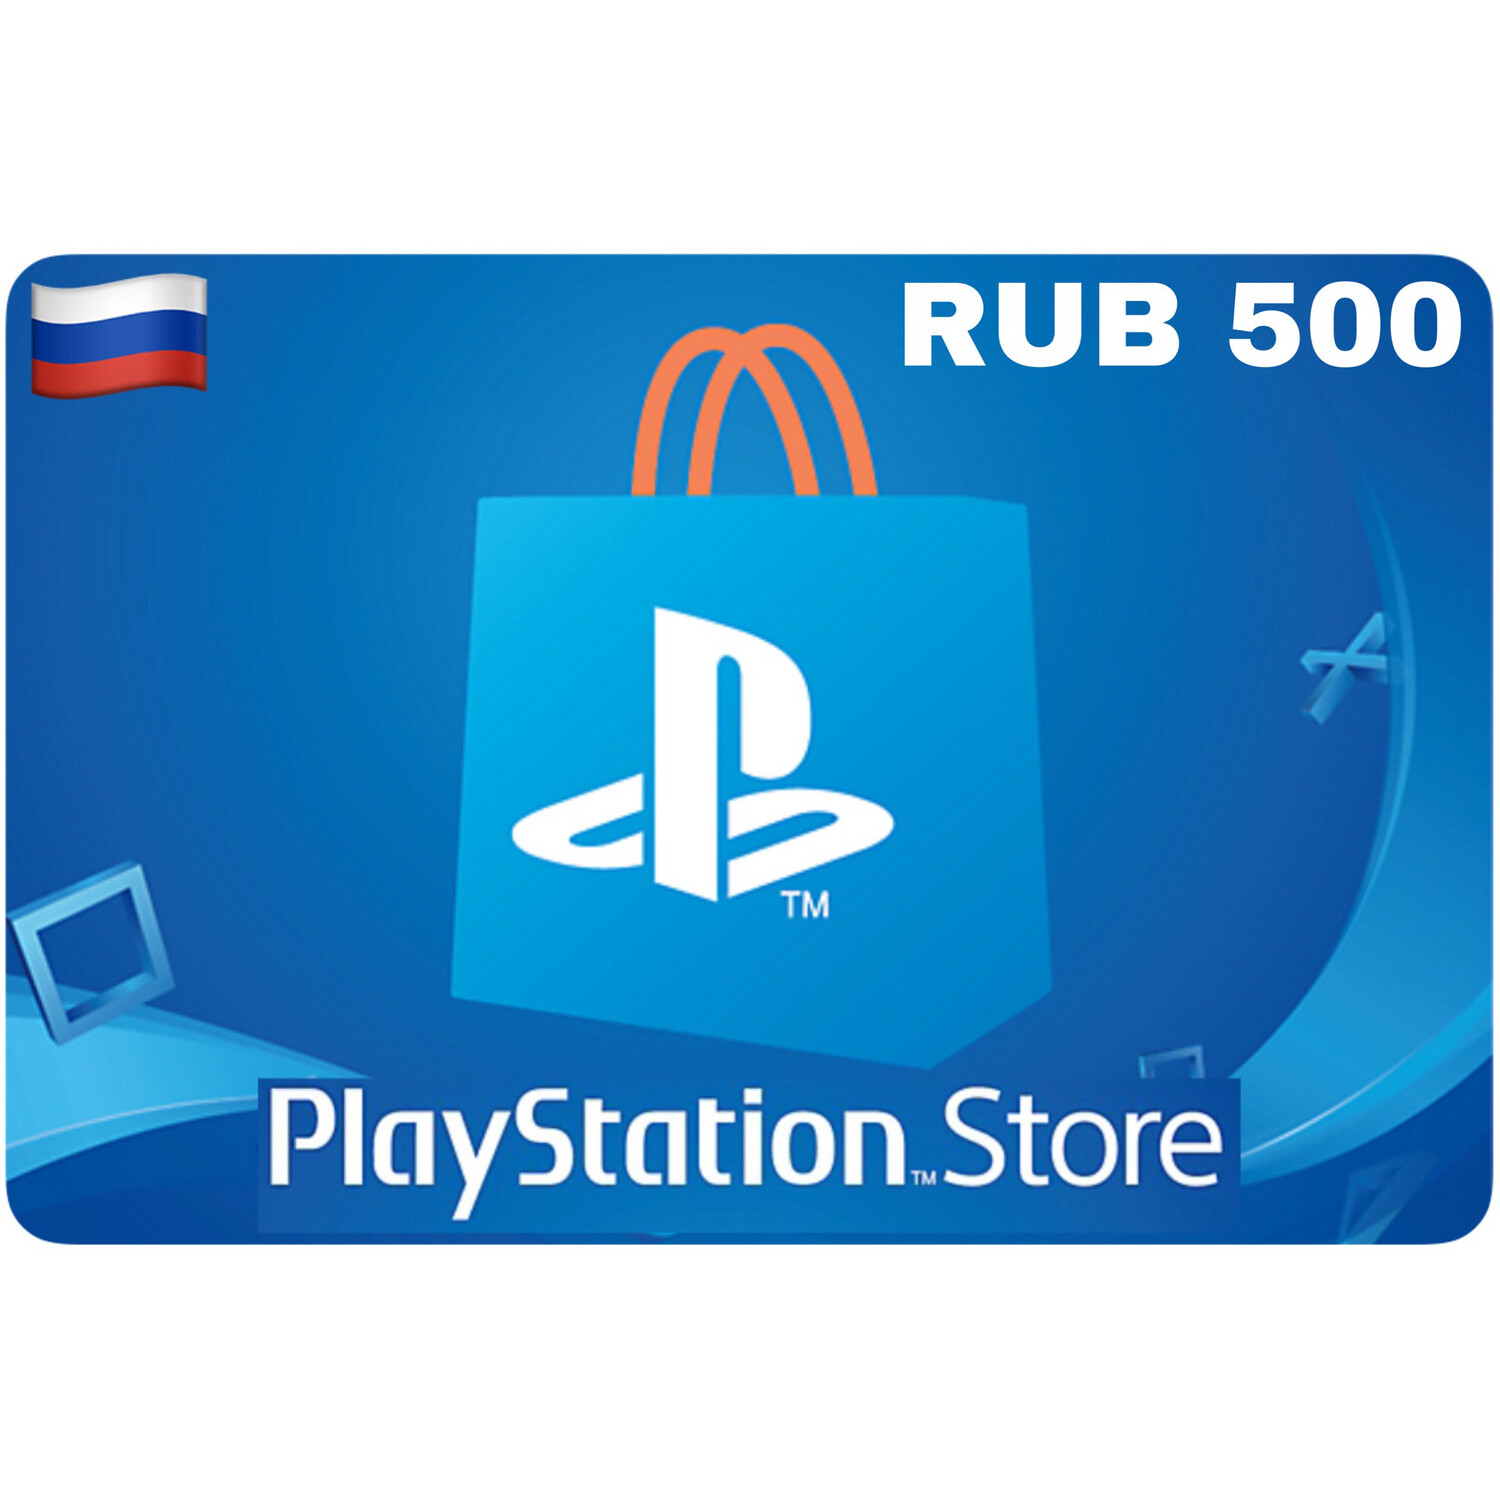 Playstation Store Gift Card Russia RUB 500